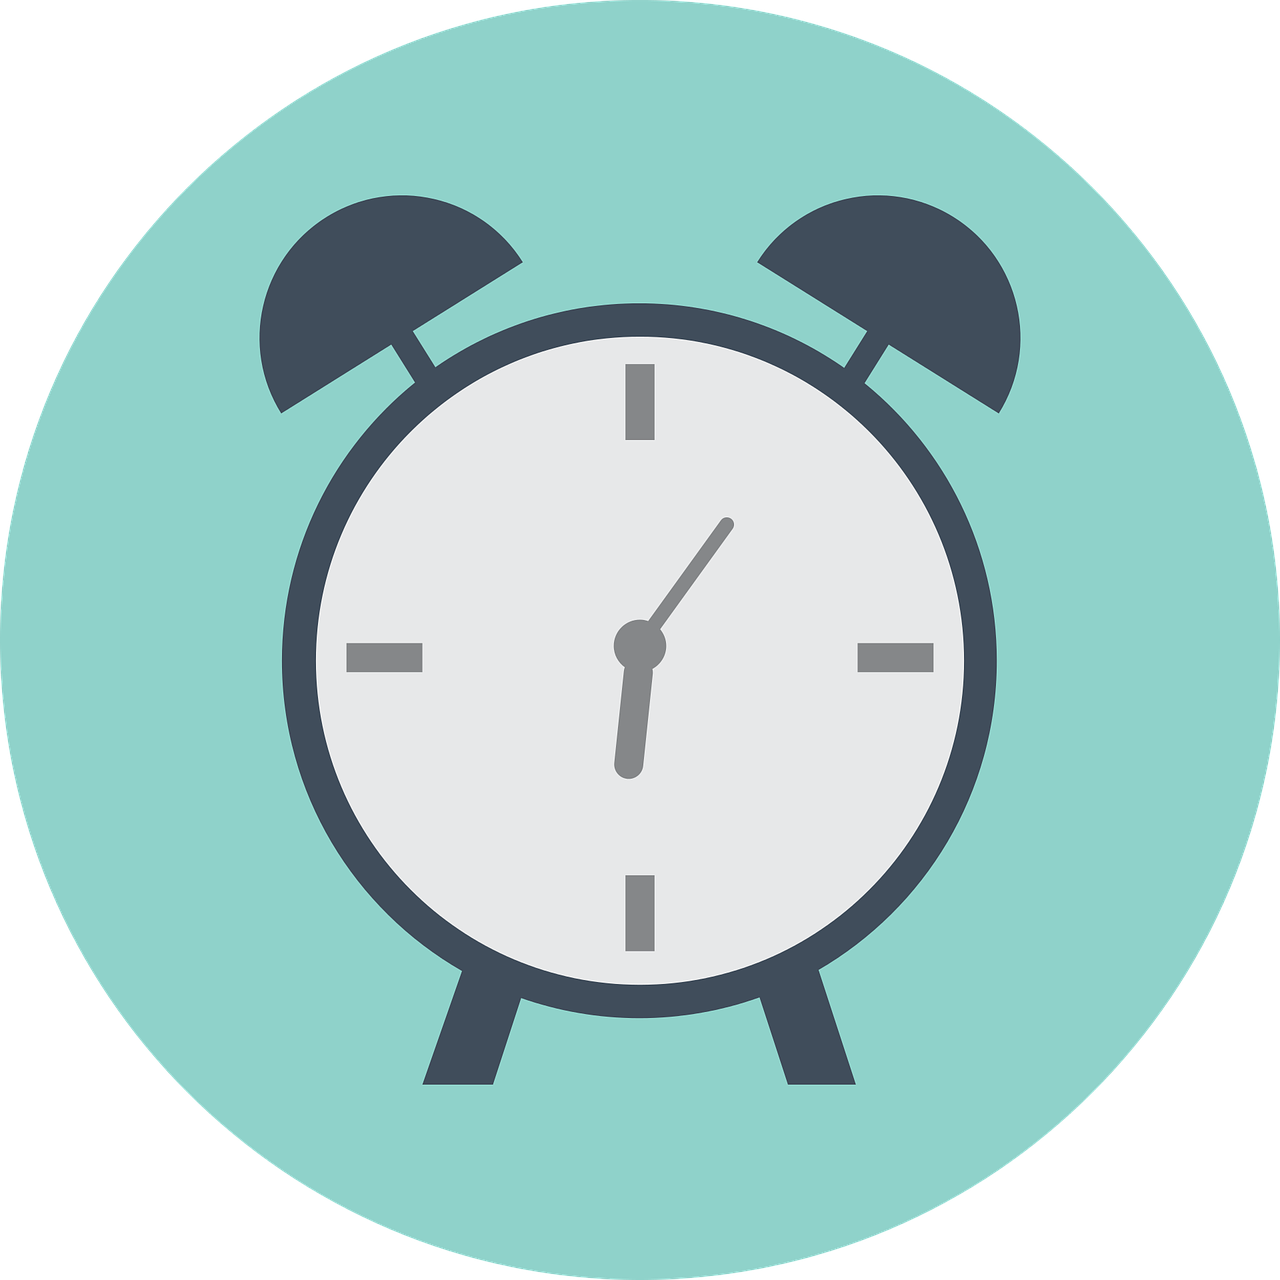 Alarm png image picpng. Clipart clock time